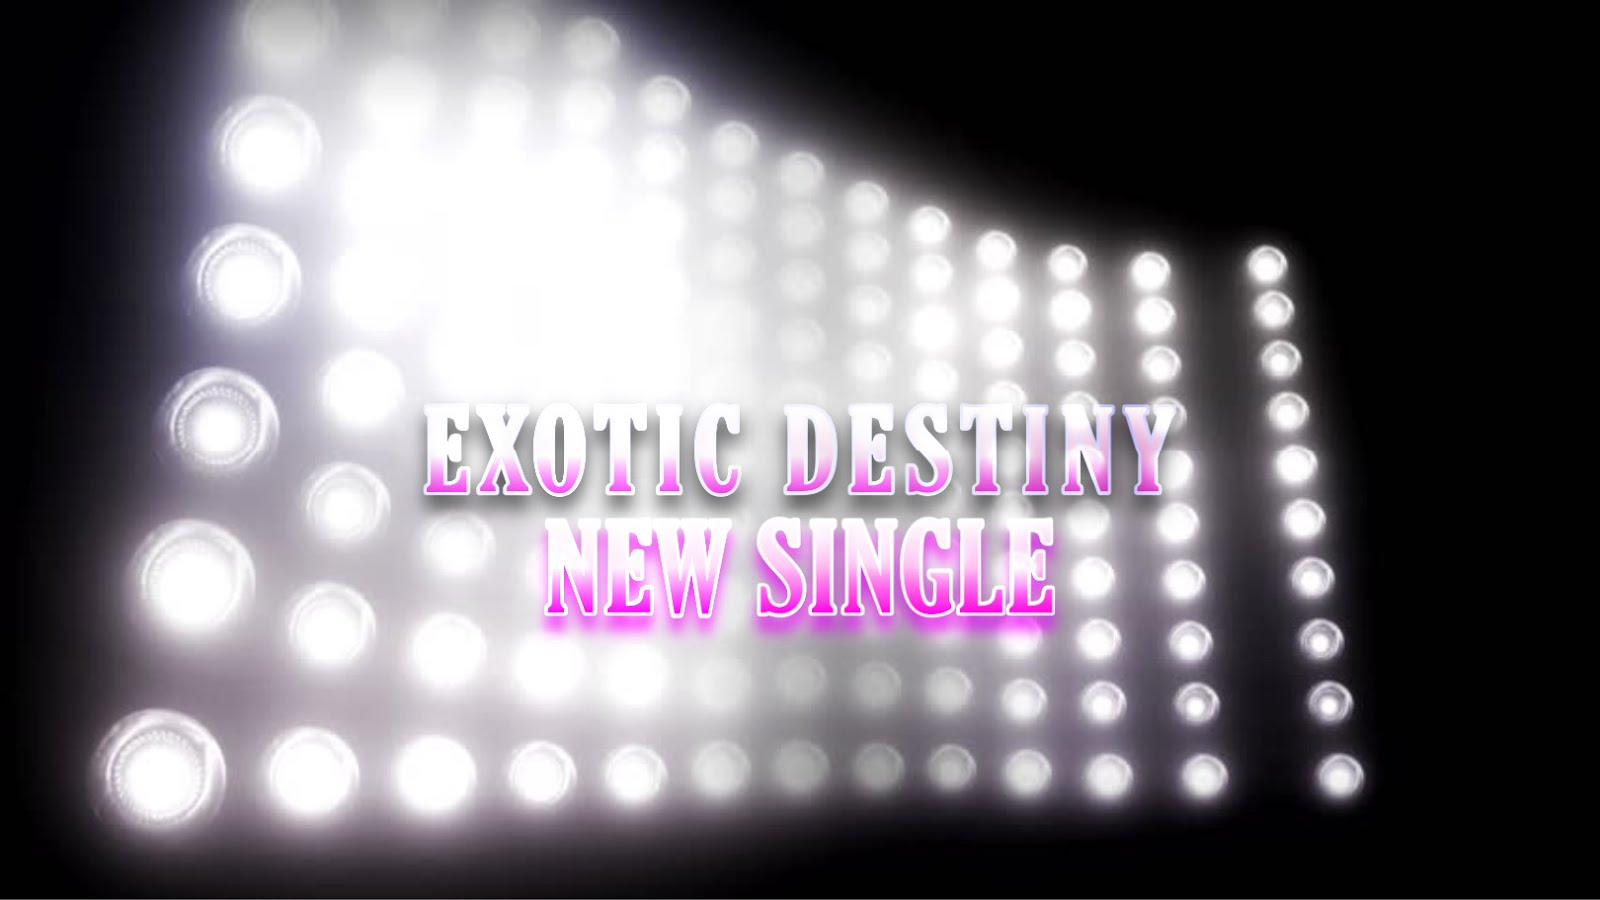 EXOTIC DESTINY